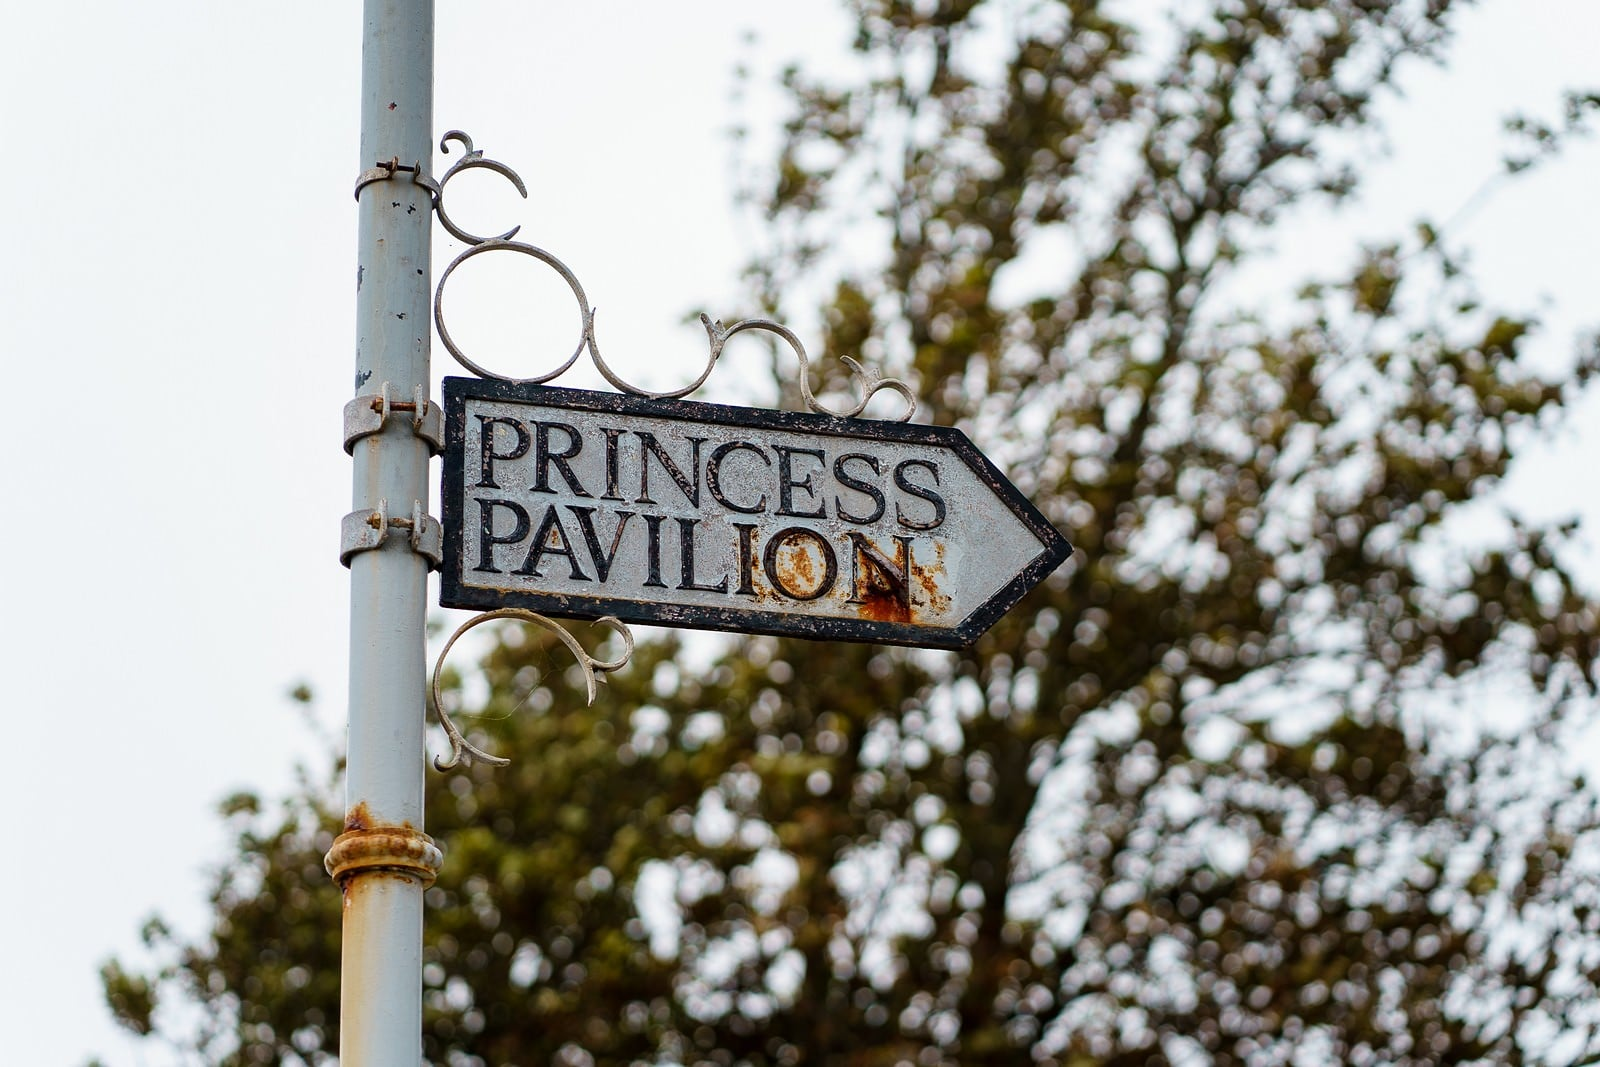 Princess pavillions wedding venue in falmouth